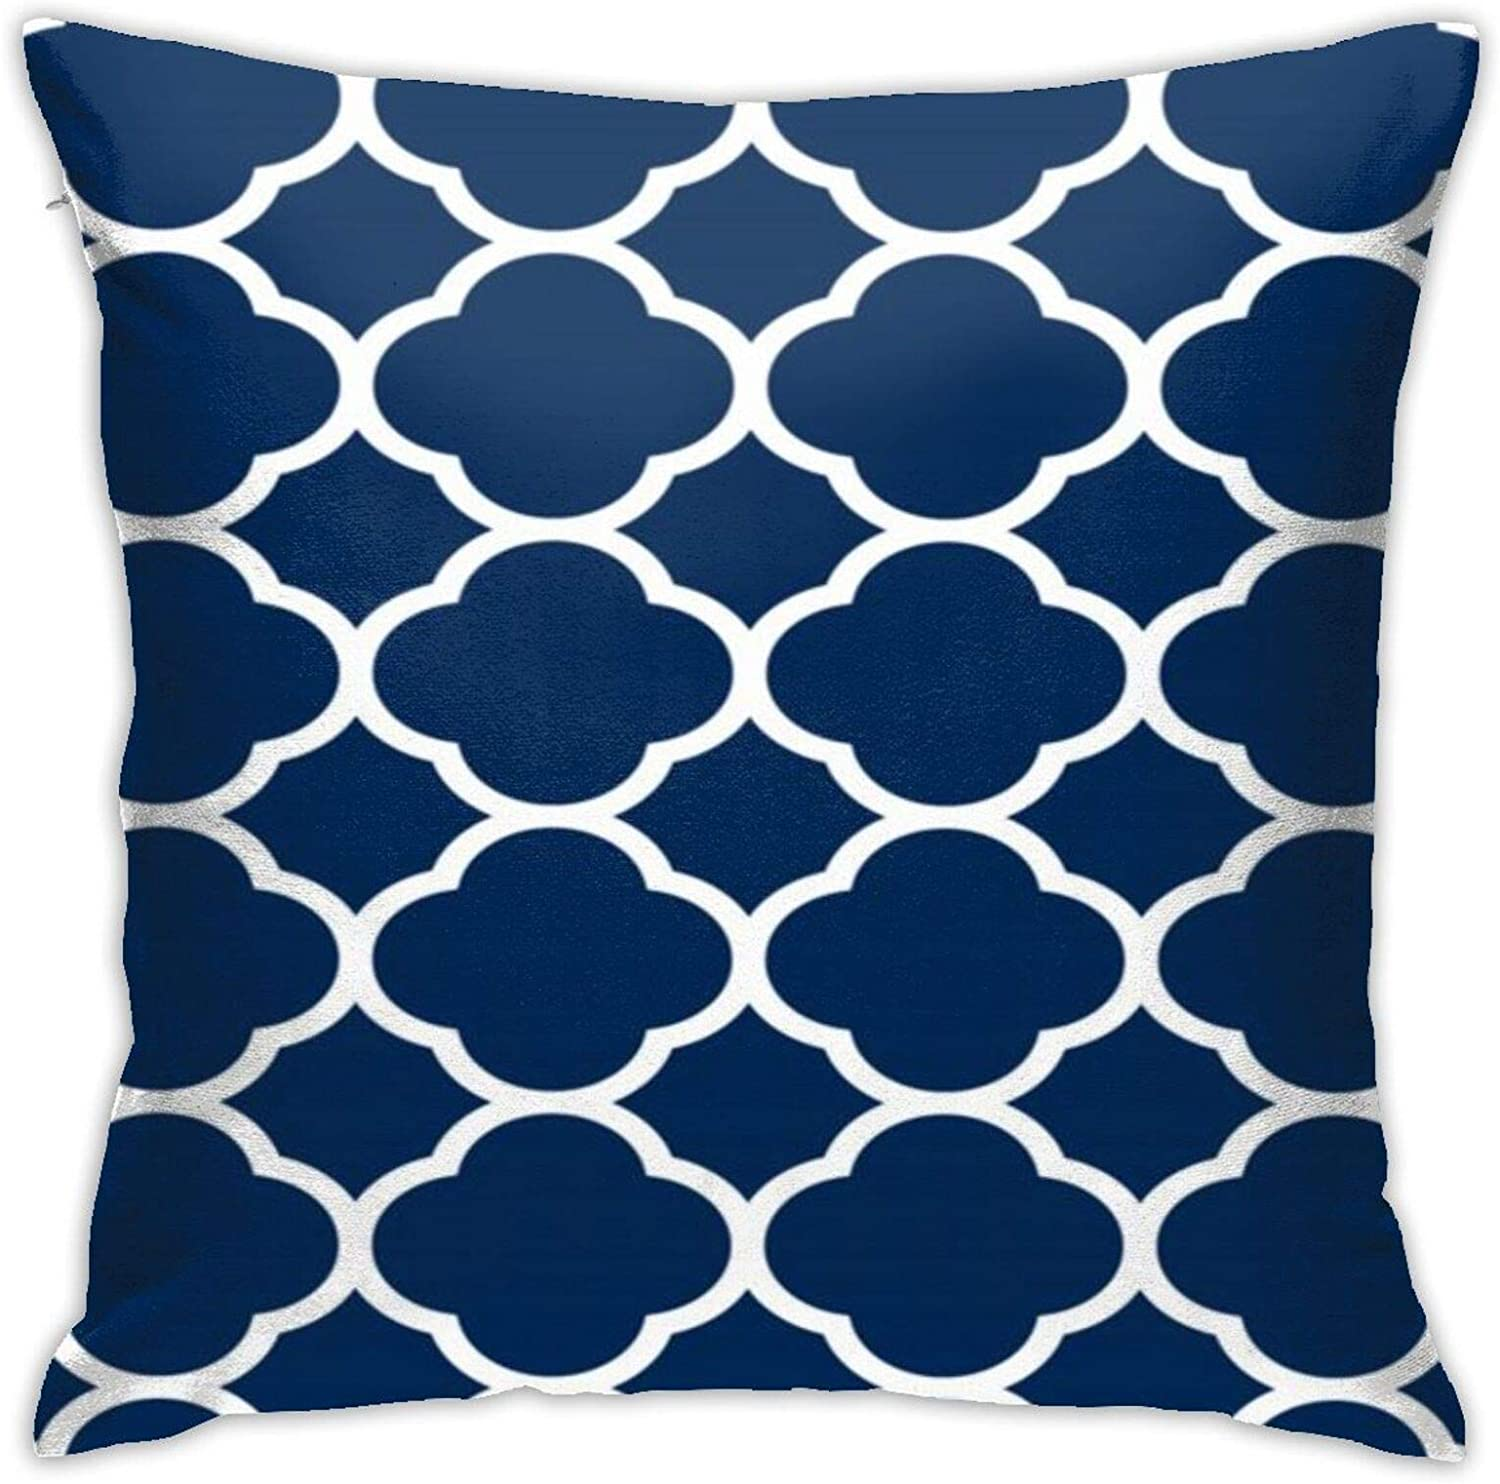 NiYoung Throw Pillow Covers Farmhouse Decorative Square Pillow Cover Case Cushion Pillowcase for Home Sofa Bedroom, 18x18 Inch (Navy White Moroccan Quatrefoil Lattice)